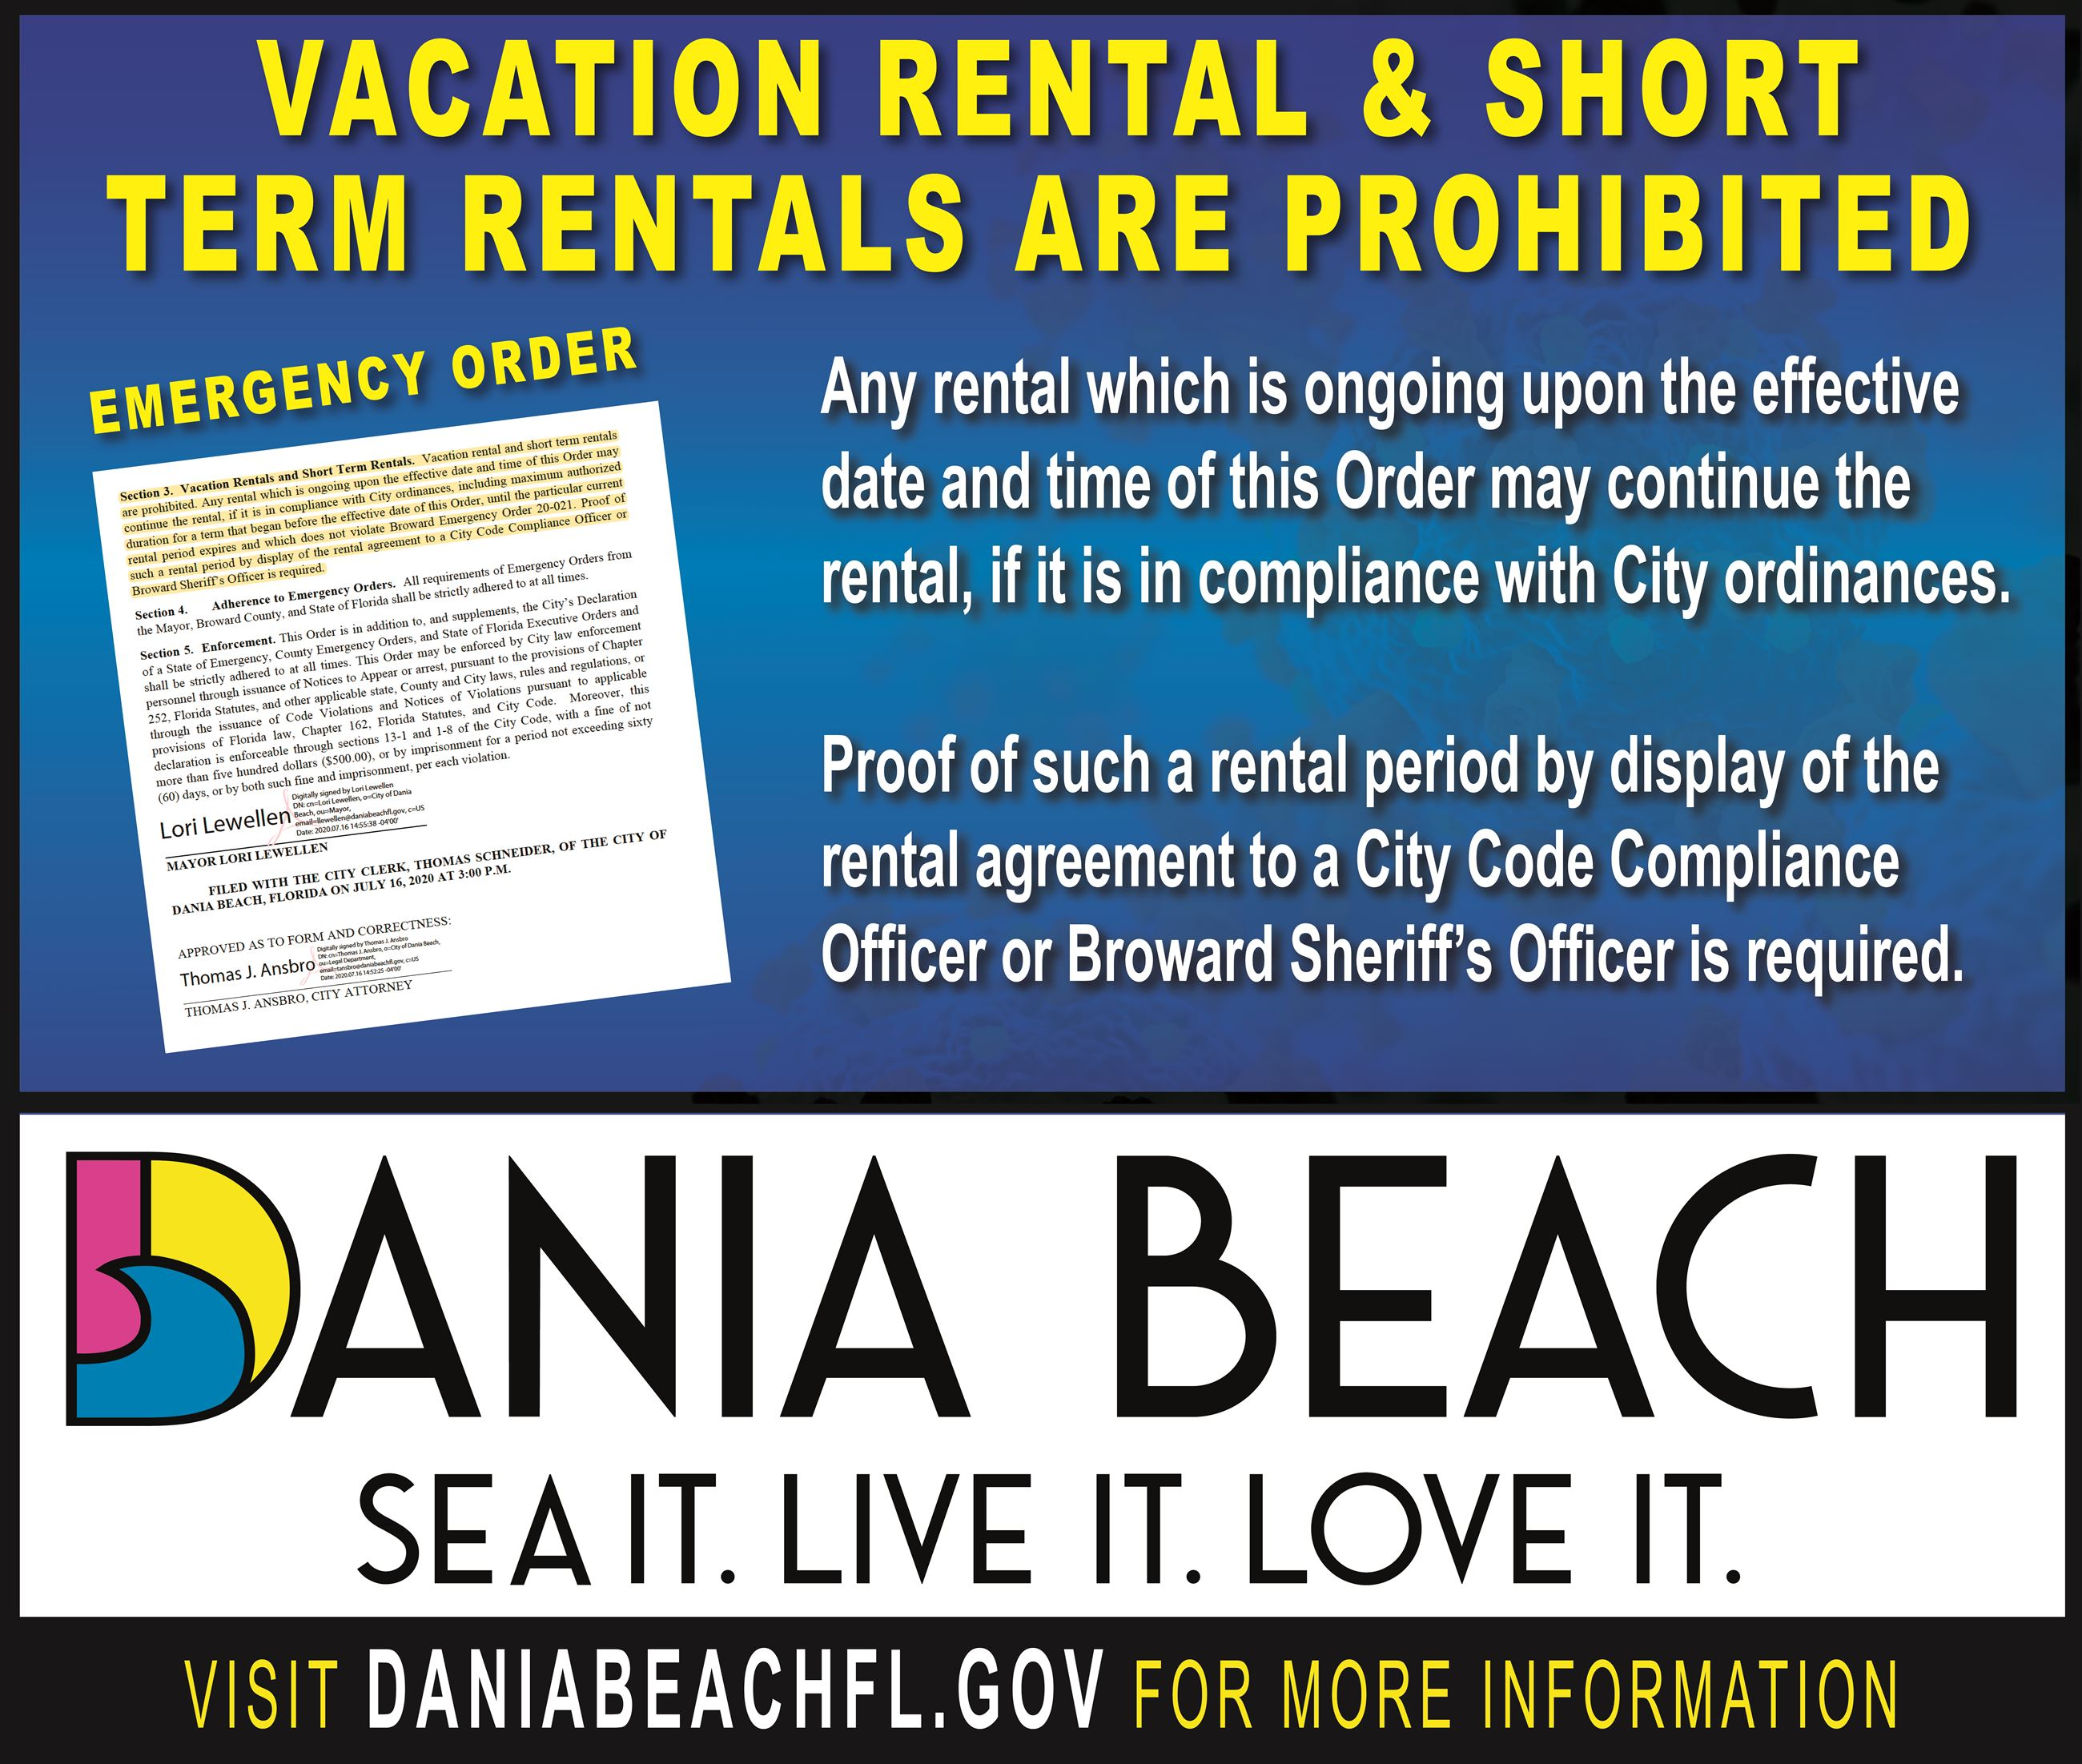 Emergency Order 23 Vacation Rental Prohibited Dania Beach